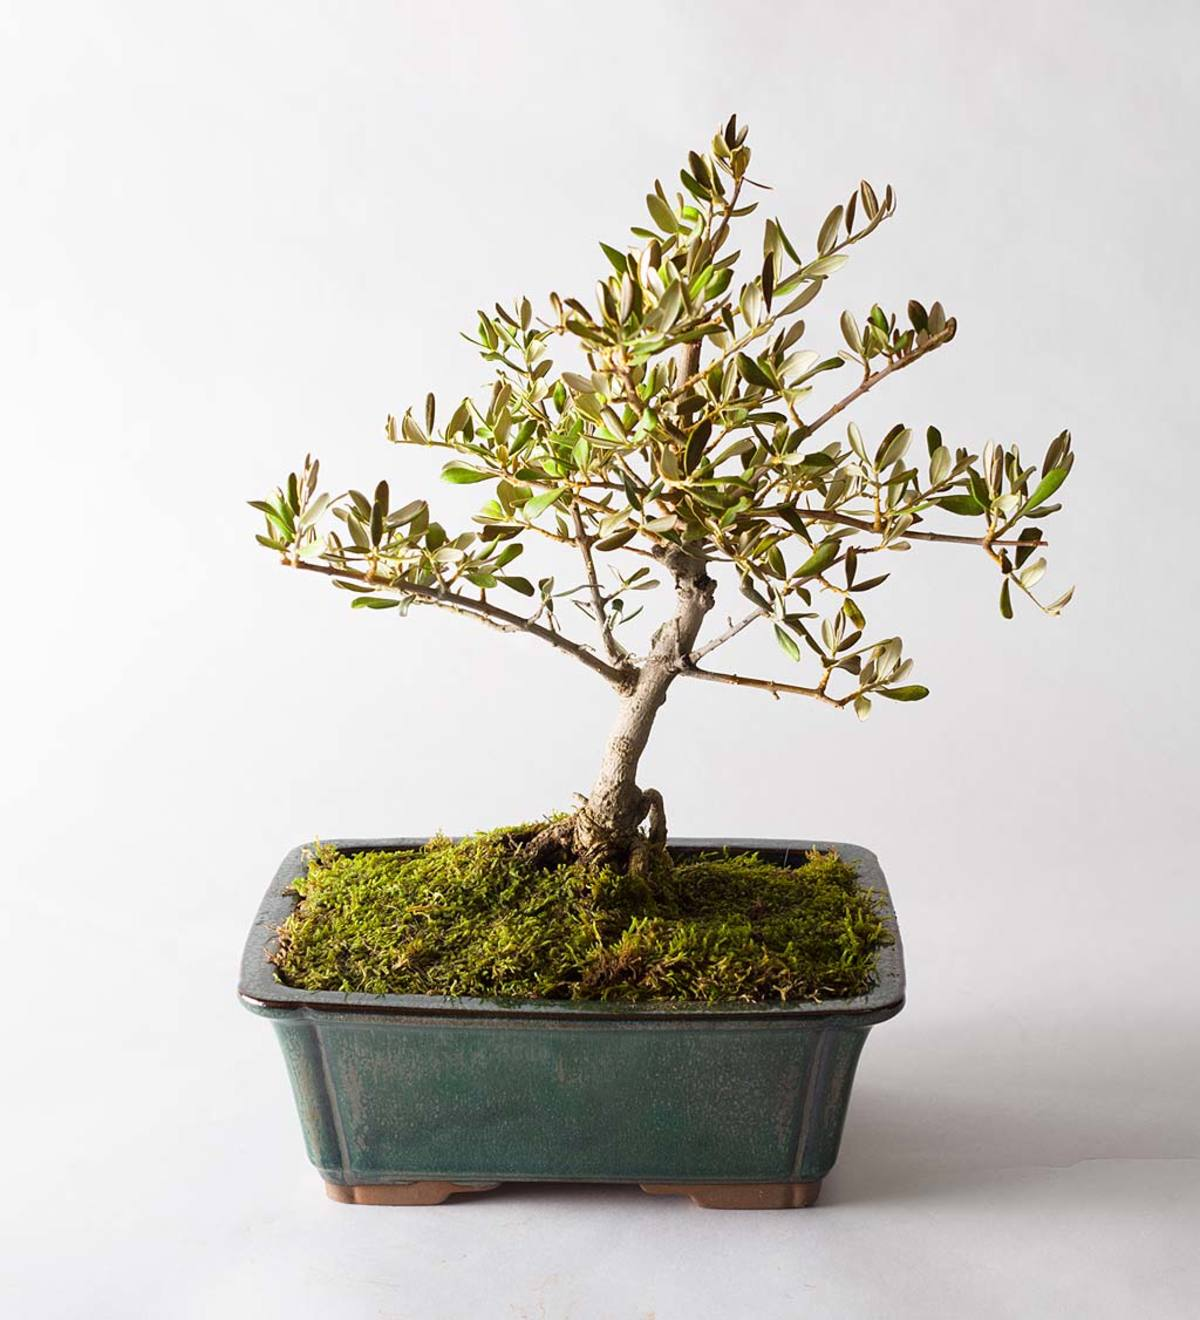 Large Olive Bonsai Tree in Planter